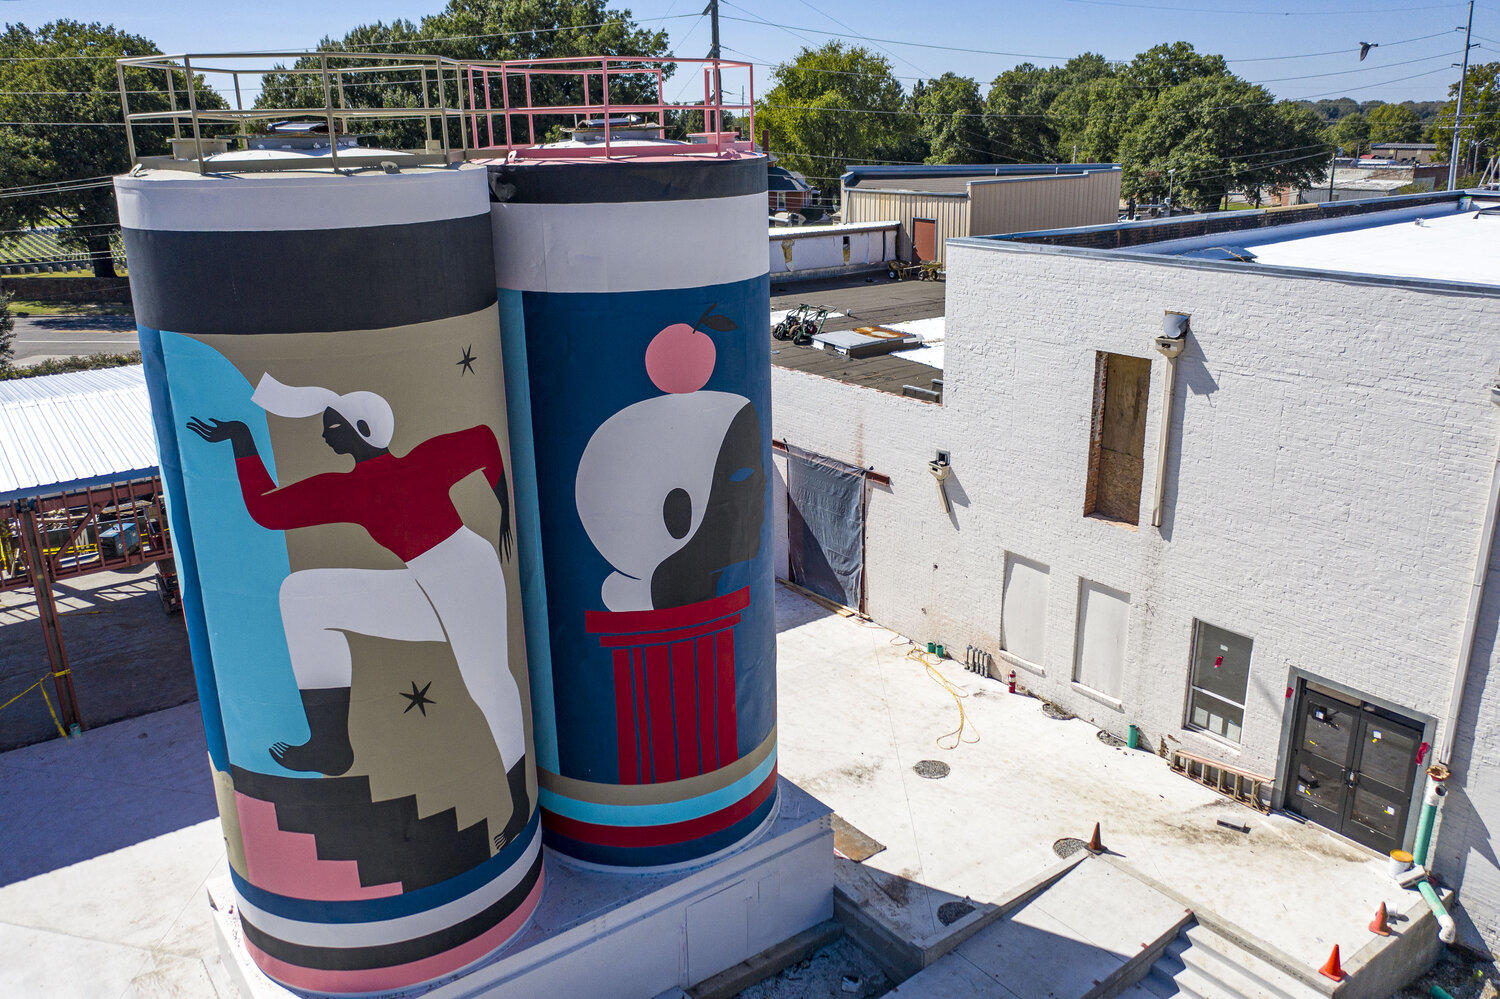 The Bakery Silos par Poni, Downtown Fort Smith, Arkansas (2019)